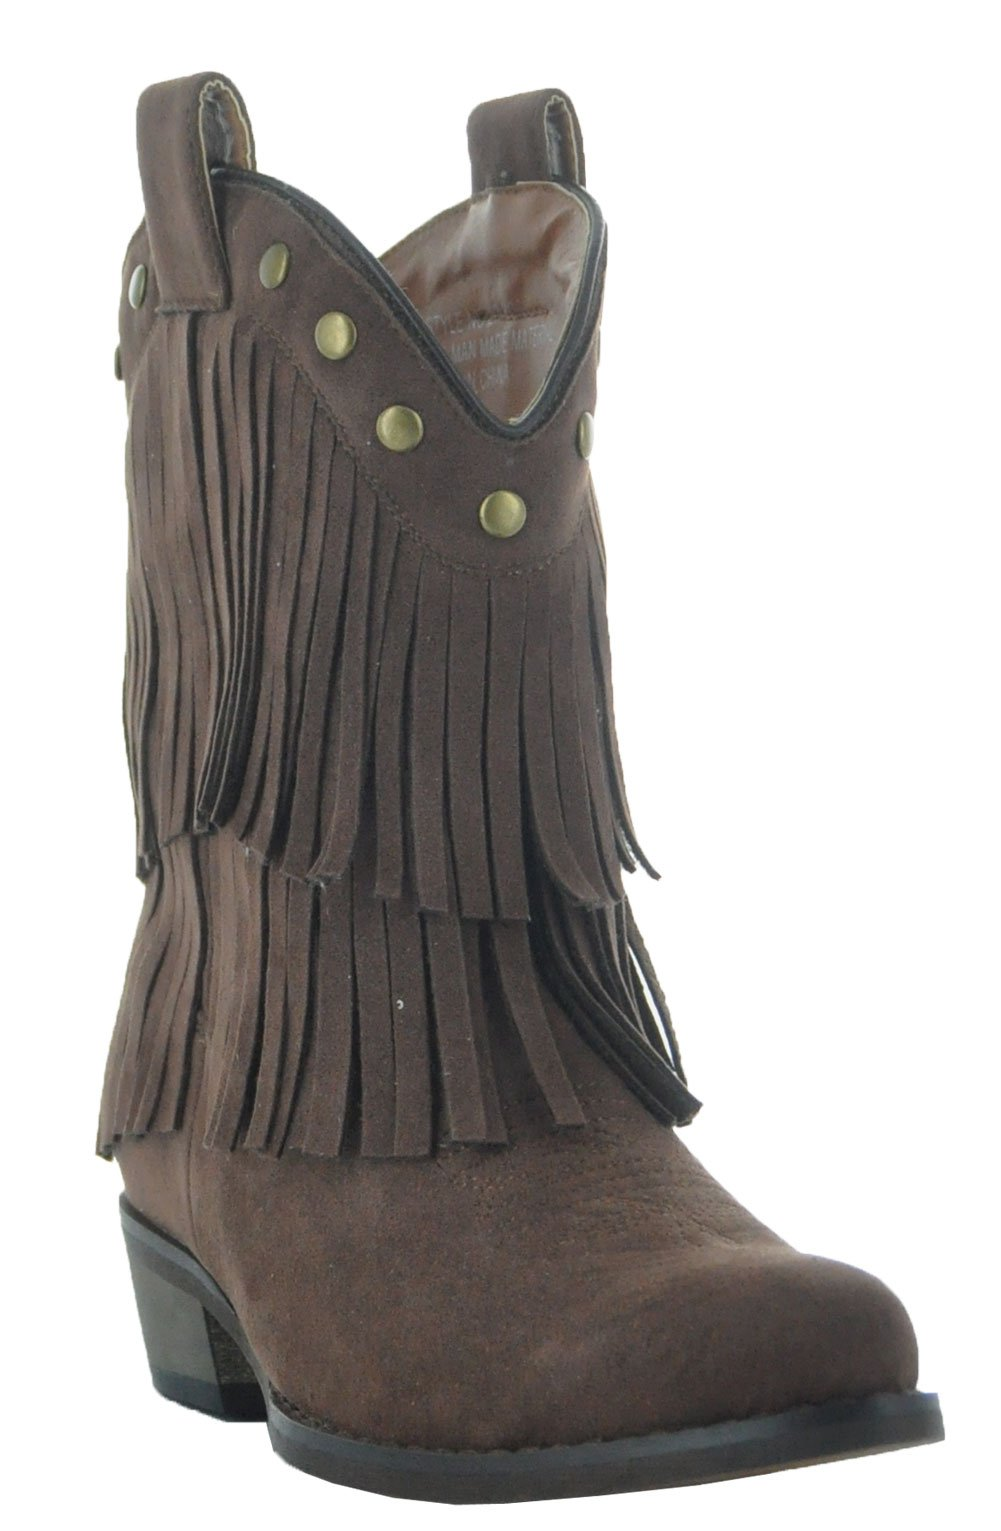 Little Kids Fun Fringe Brown Cowgirl Boots by Country Love Boots (1 Little Kids, Brown)